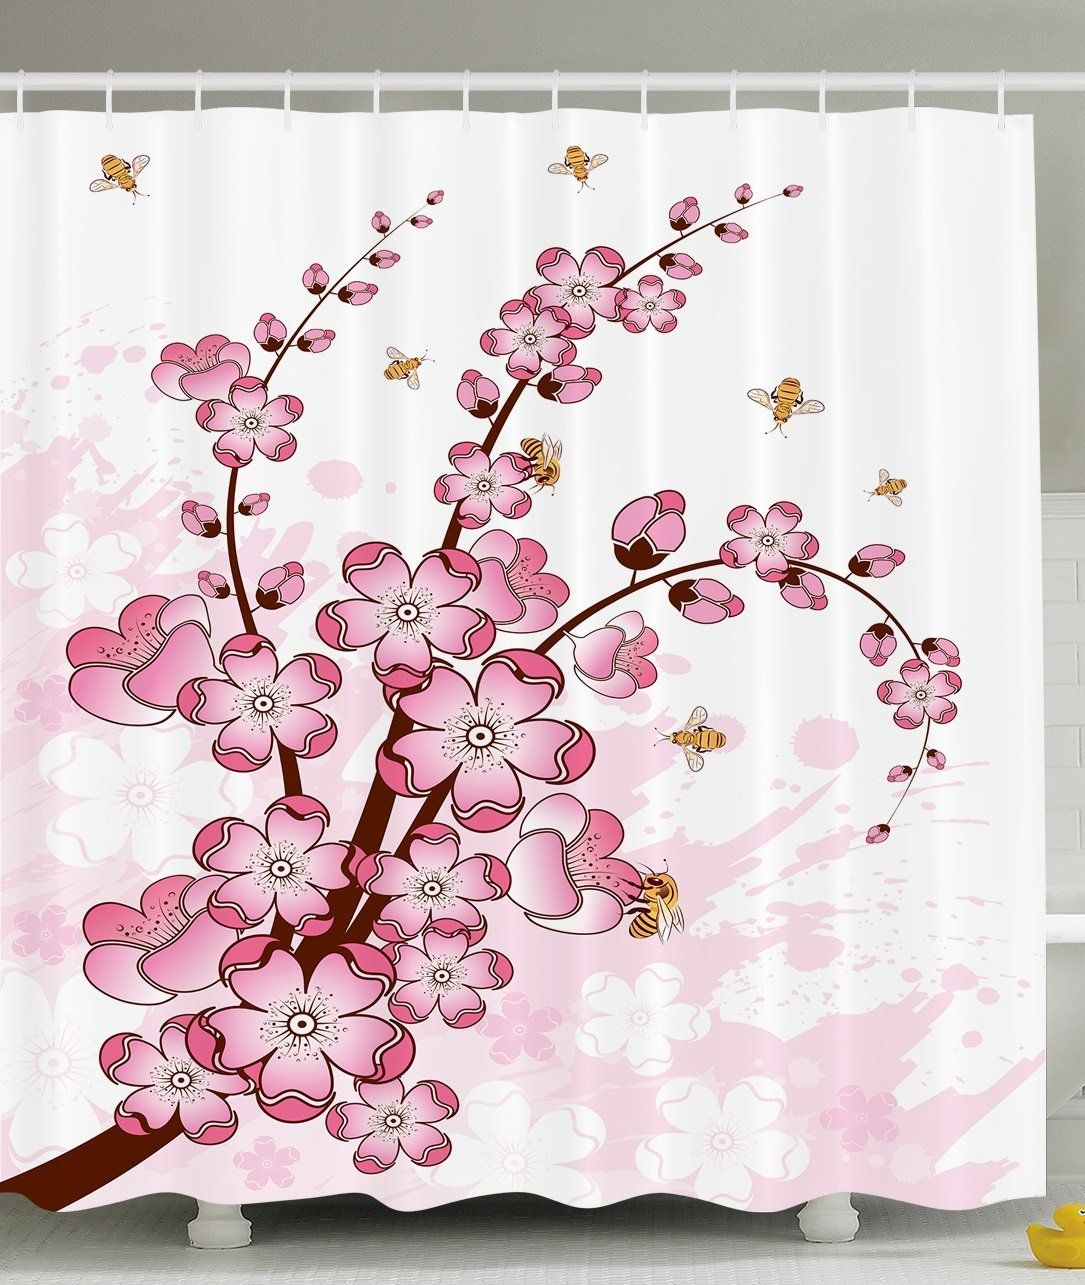 Pretty Cherry Blossom Shower Curtain Cool Shower Curtains Shower Curtain Decor Shower Curtain